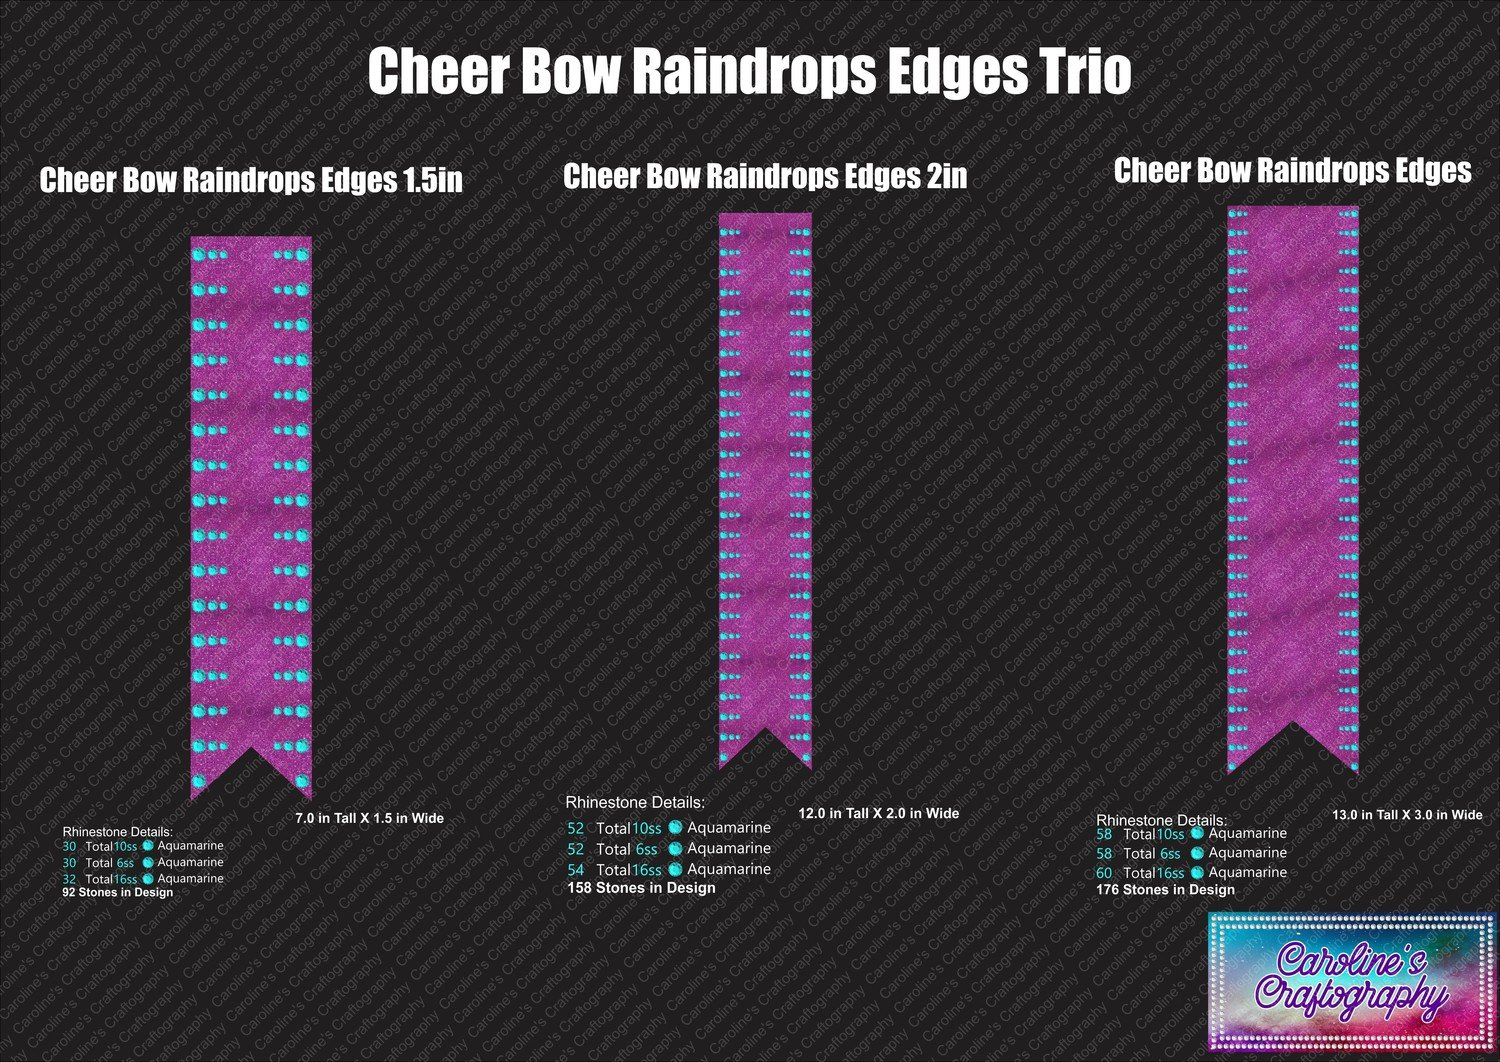 Cheer Bow Raindrops Edges Trio